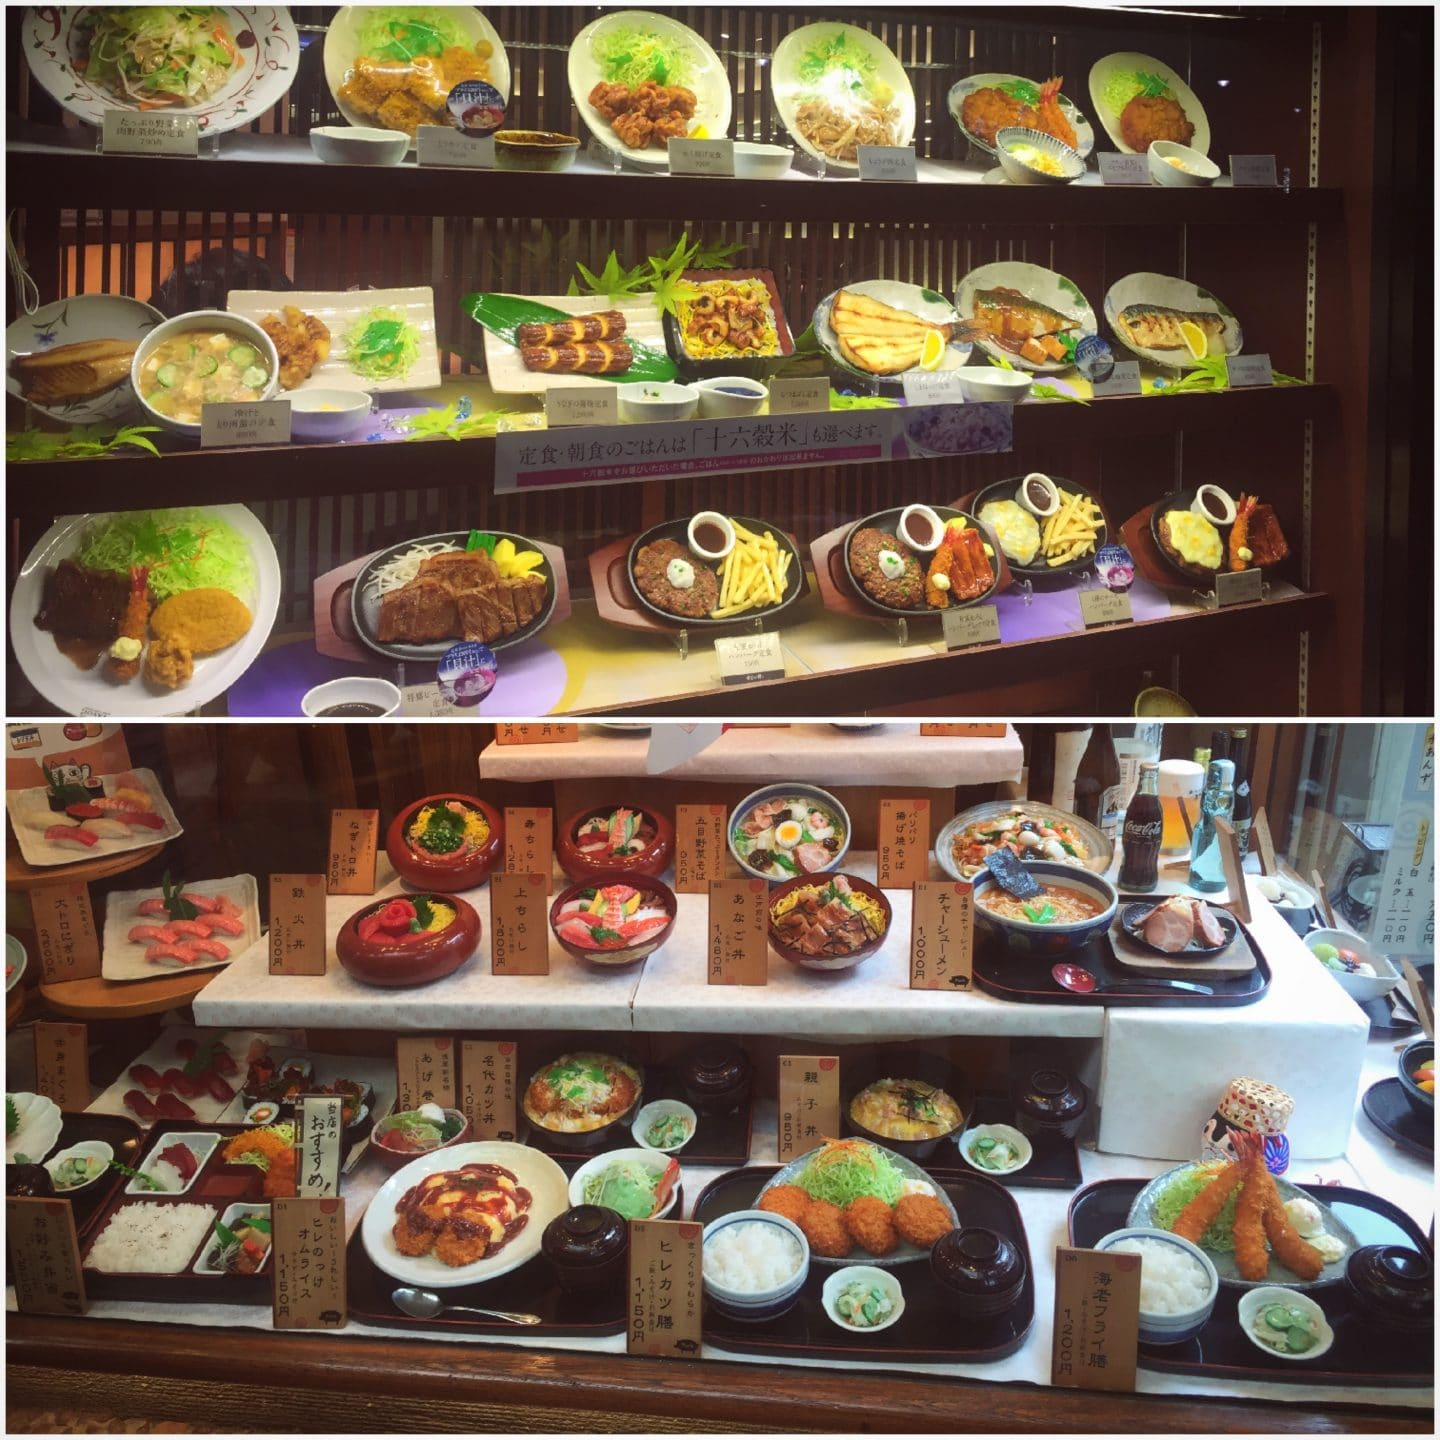 Food display in Japanese restaurants